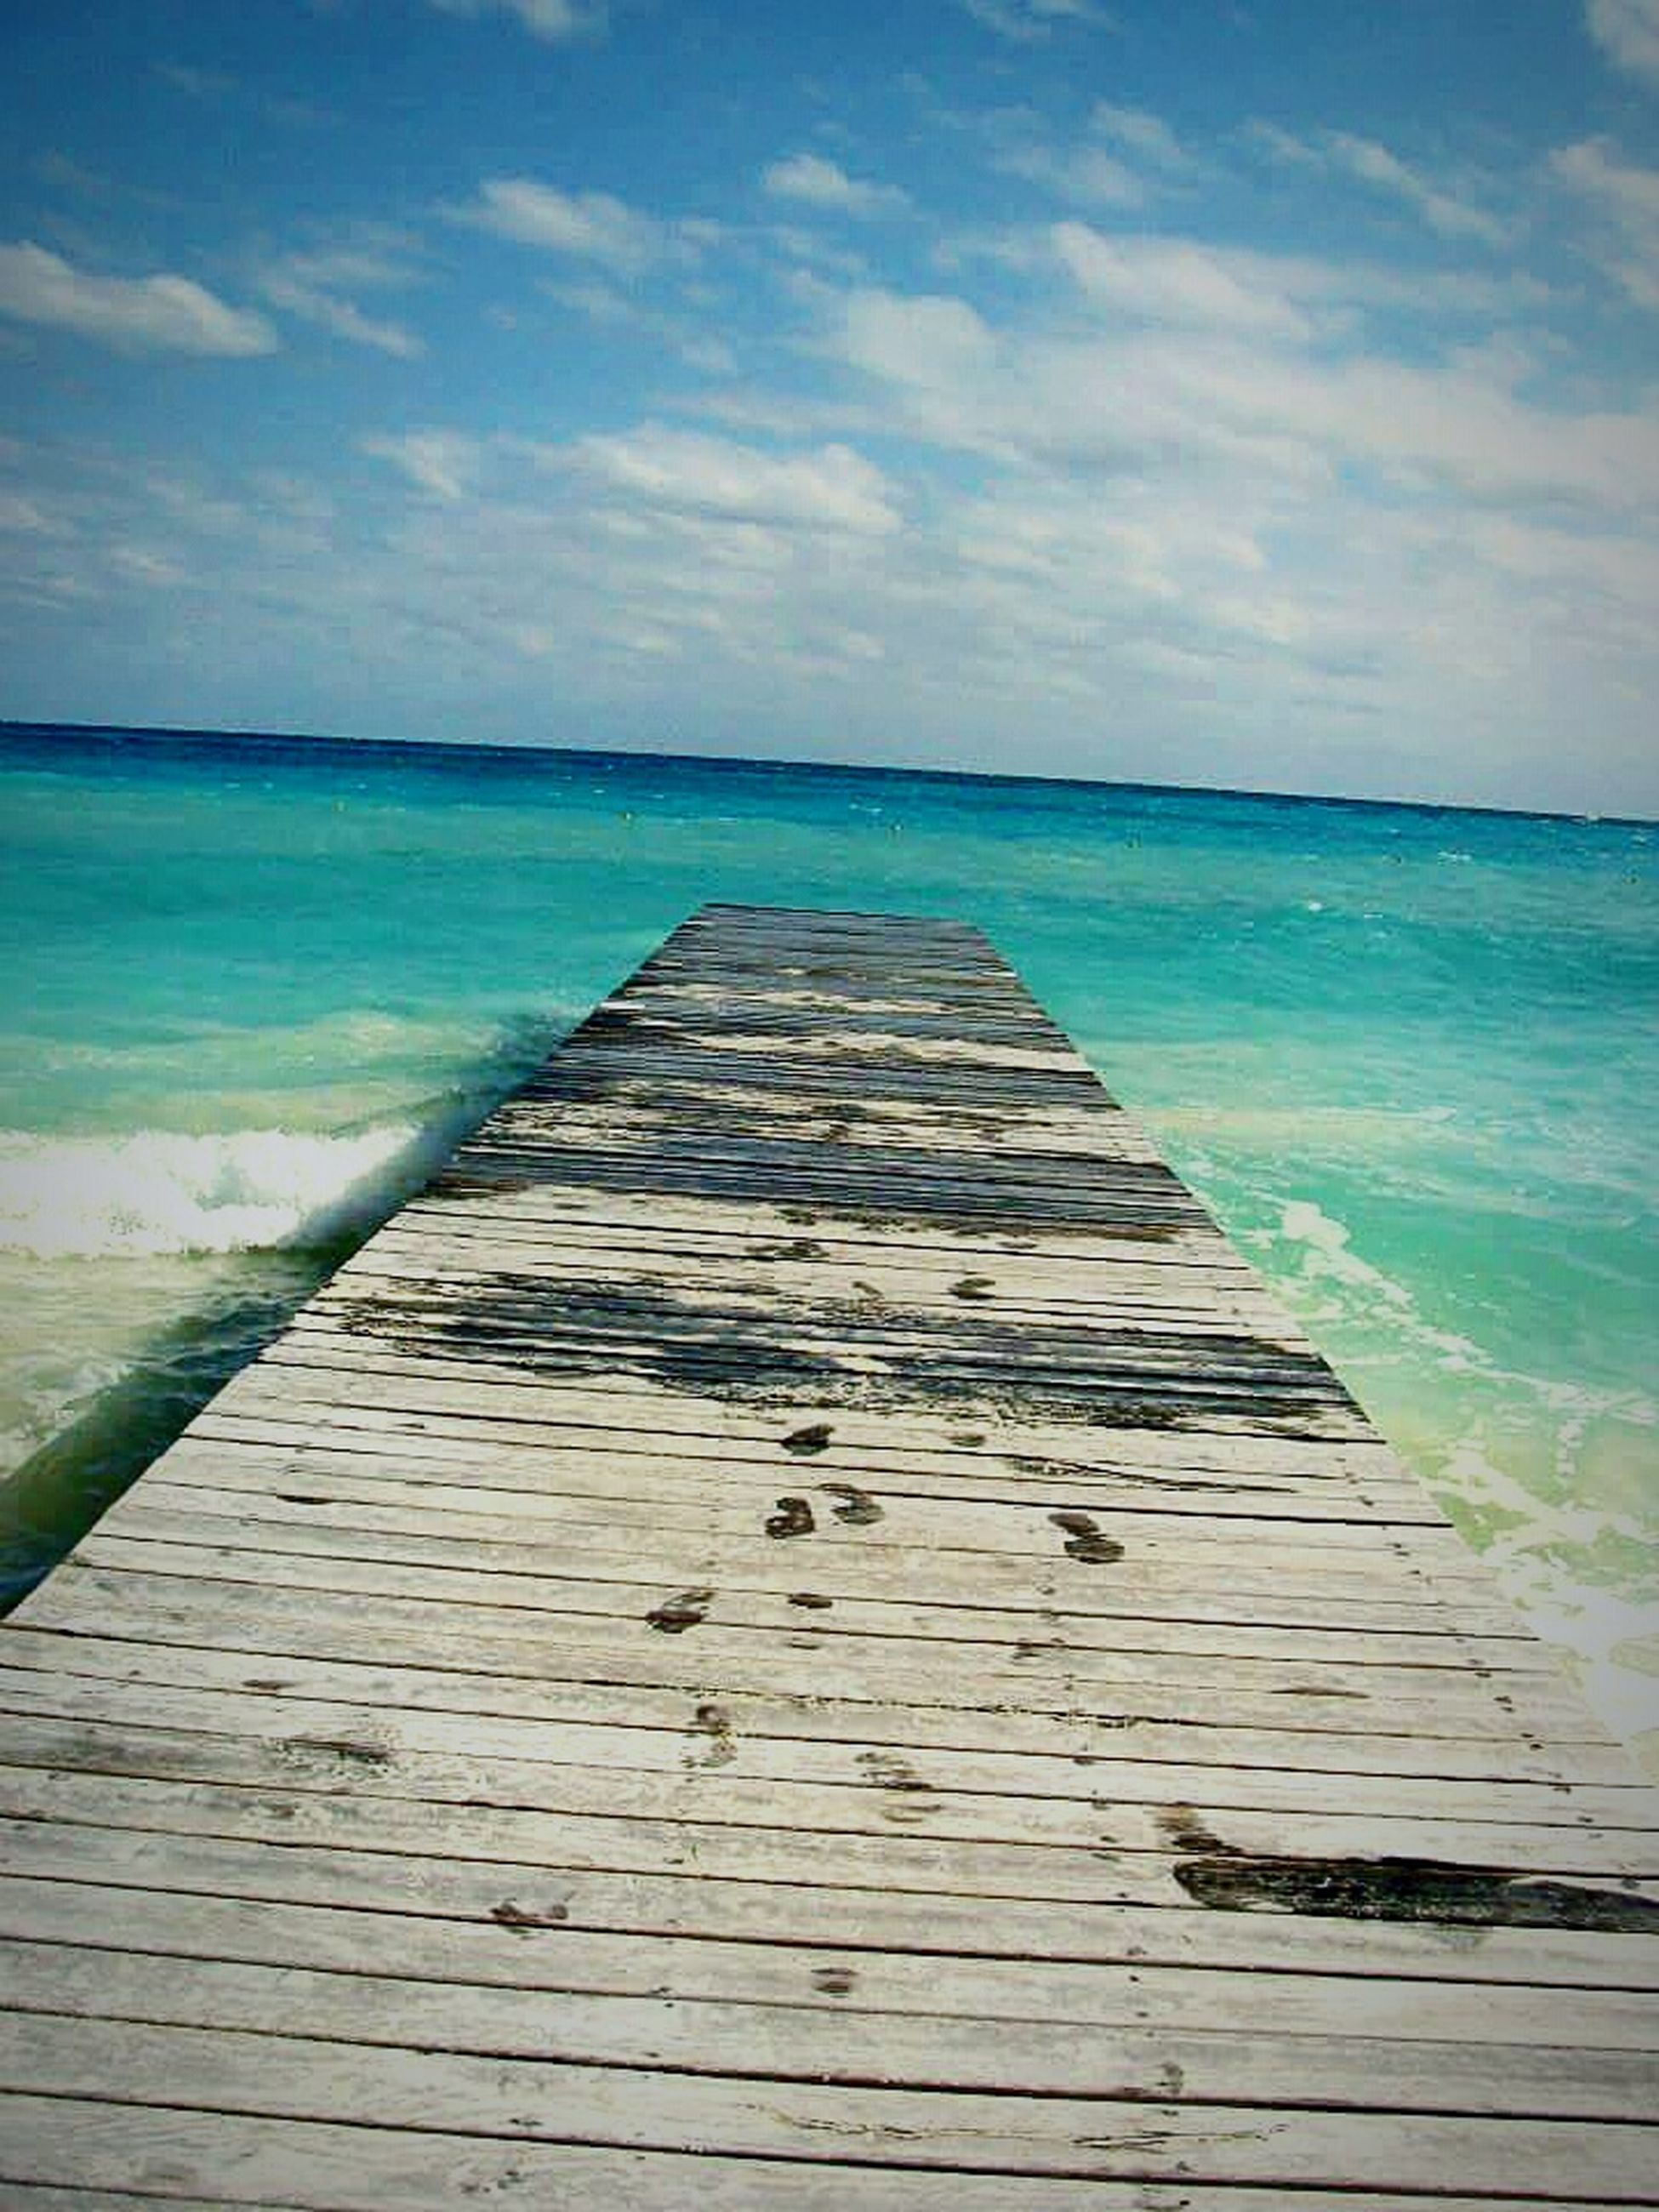 sea, horizon over water, water, the way forward, sky, beach, blue, tranquil scene, tranquility, scenics, diminishing perspective, pier, beauty in nature, nature, shore, cloud, cloud - sky, idyllic, day, boardwalk